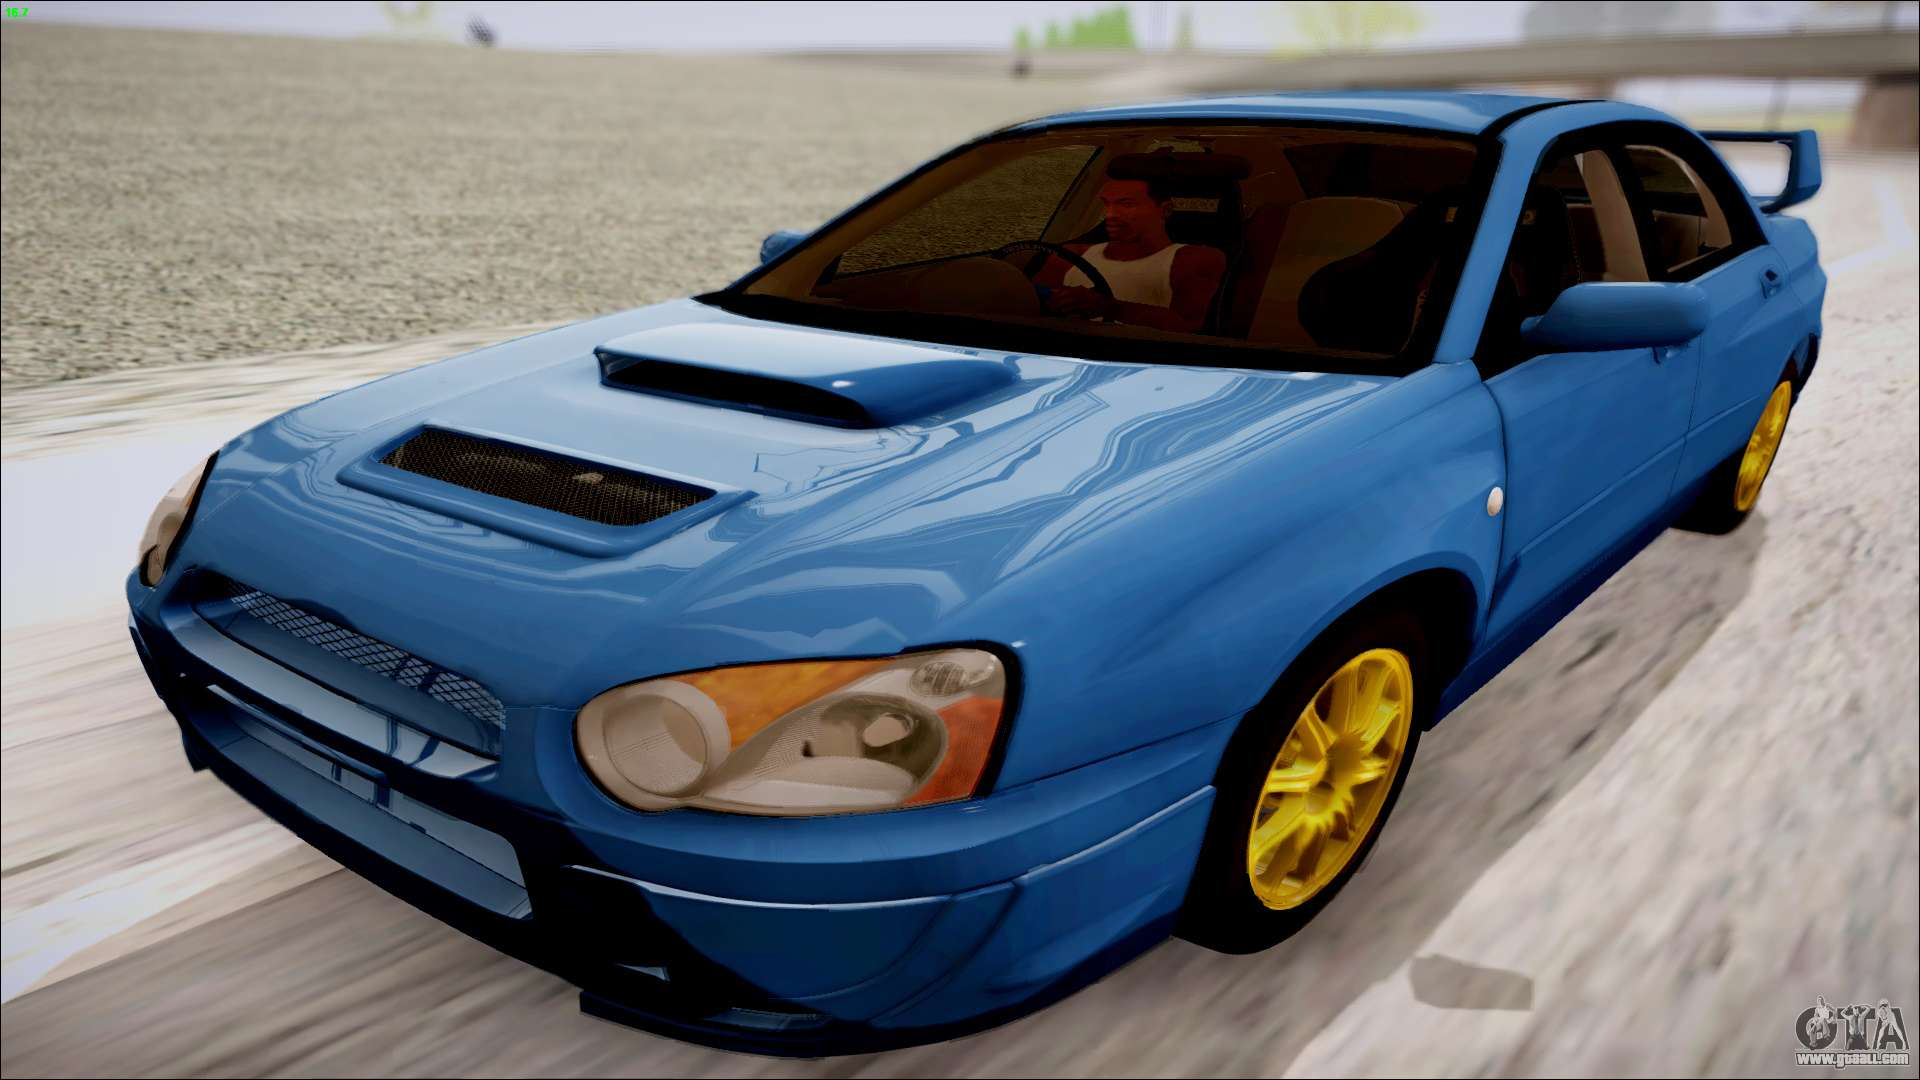 Aa likewise Maxresdefault besides Subaru Impreza Wrx Sti Ej Scroll Up Pipe Lower Turbo Manifold Content also  also Subaru Oem Turbo Banjo Bolt With Screen Sti Wrx More. on 2004 subaru sti